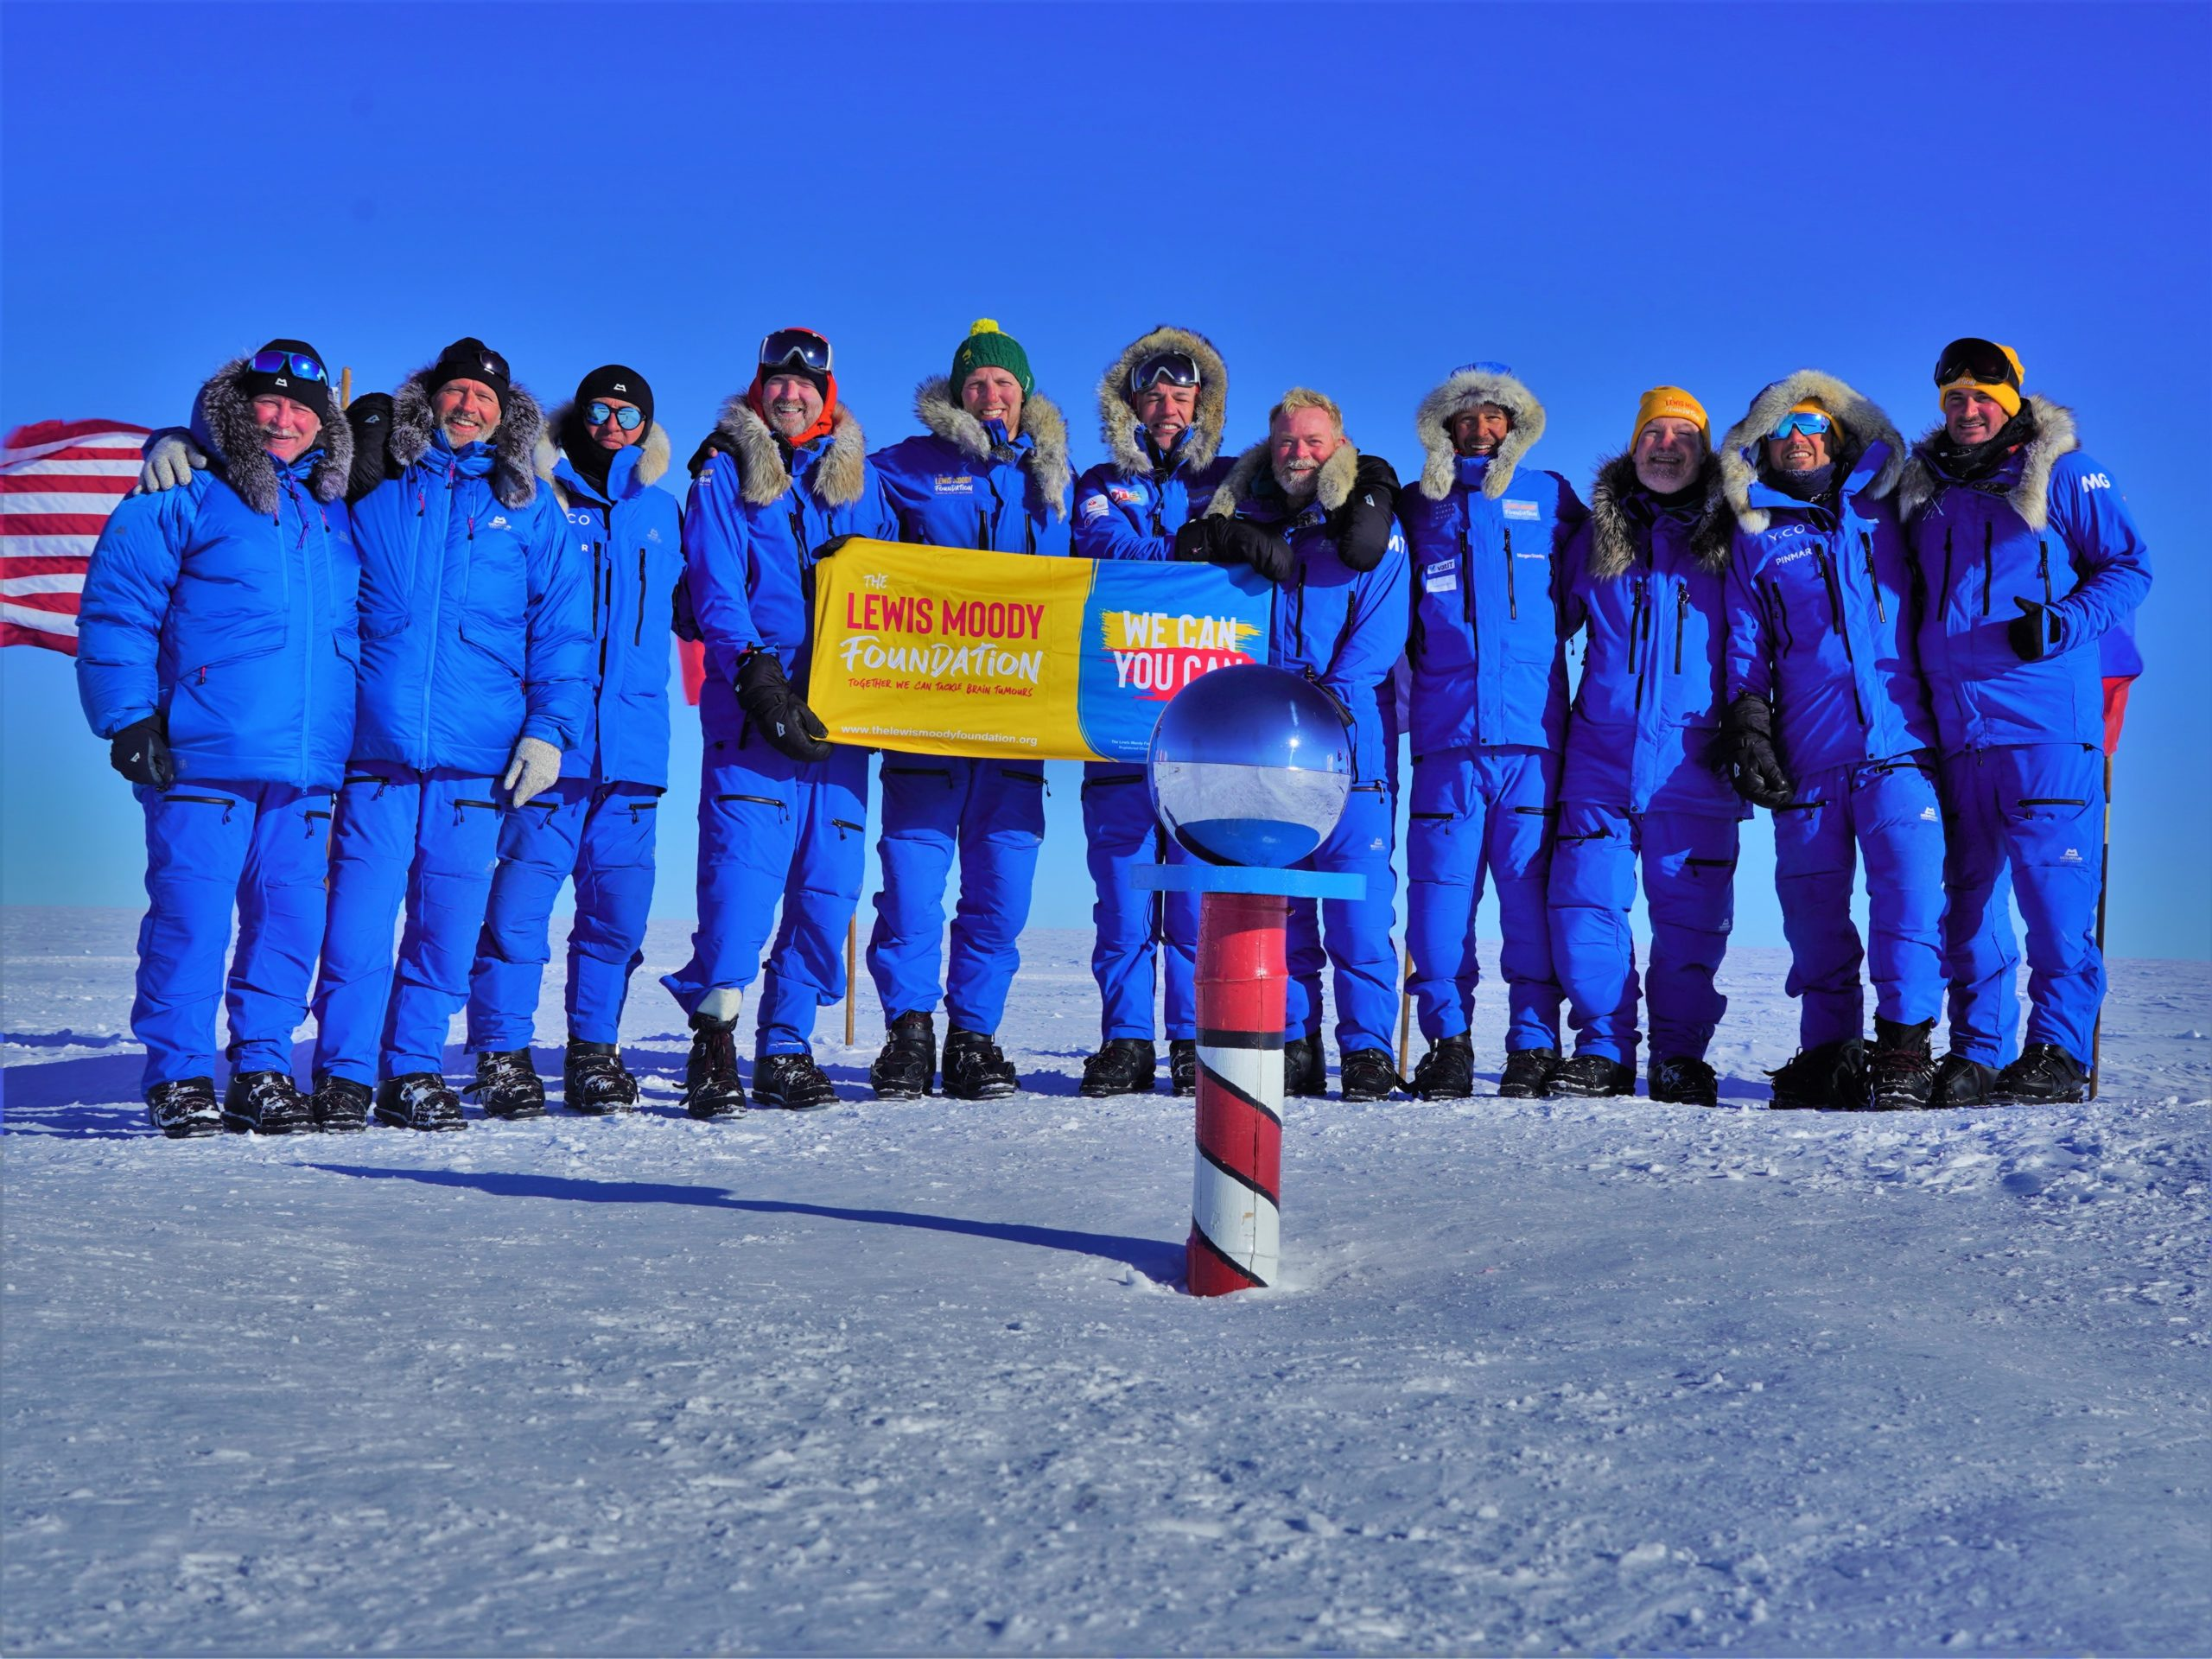 Headsouth team arrive at the South Pole!